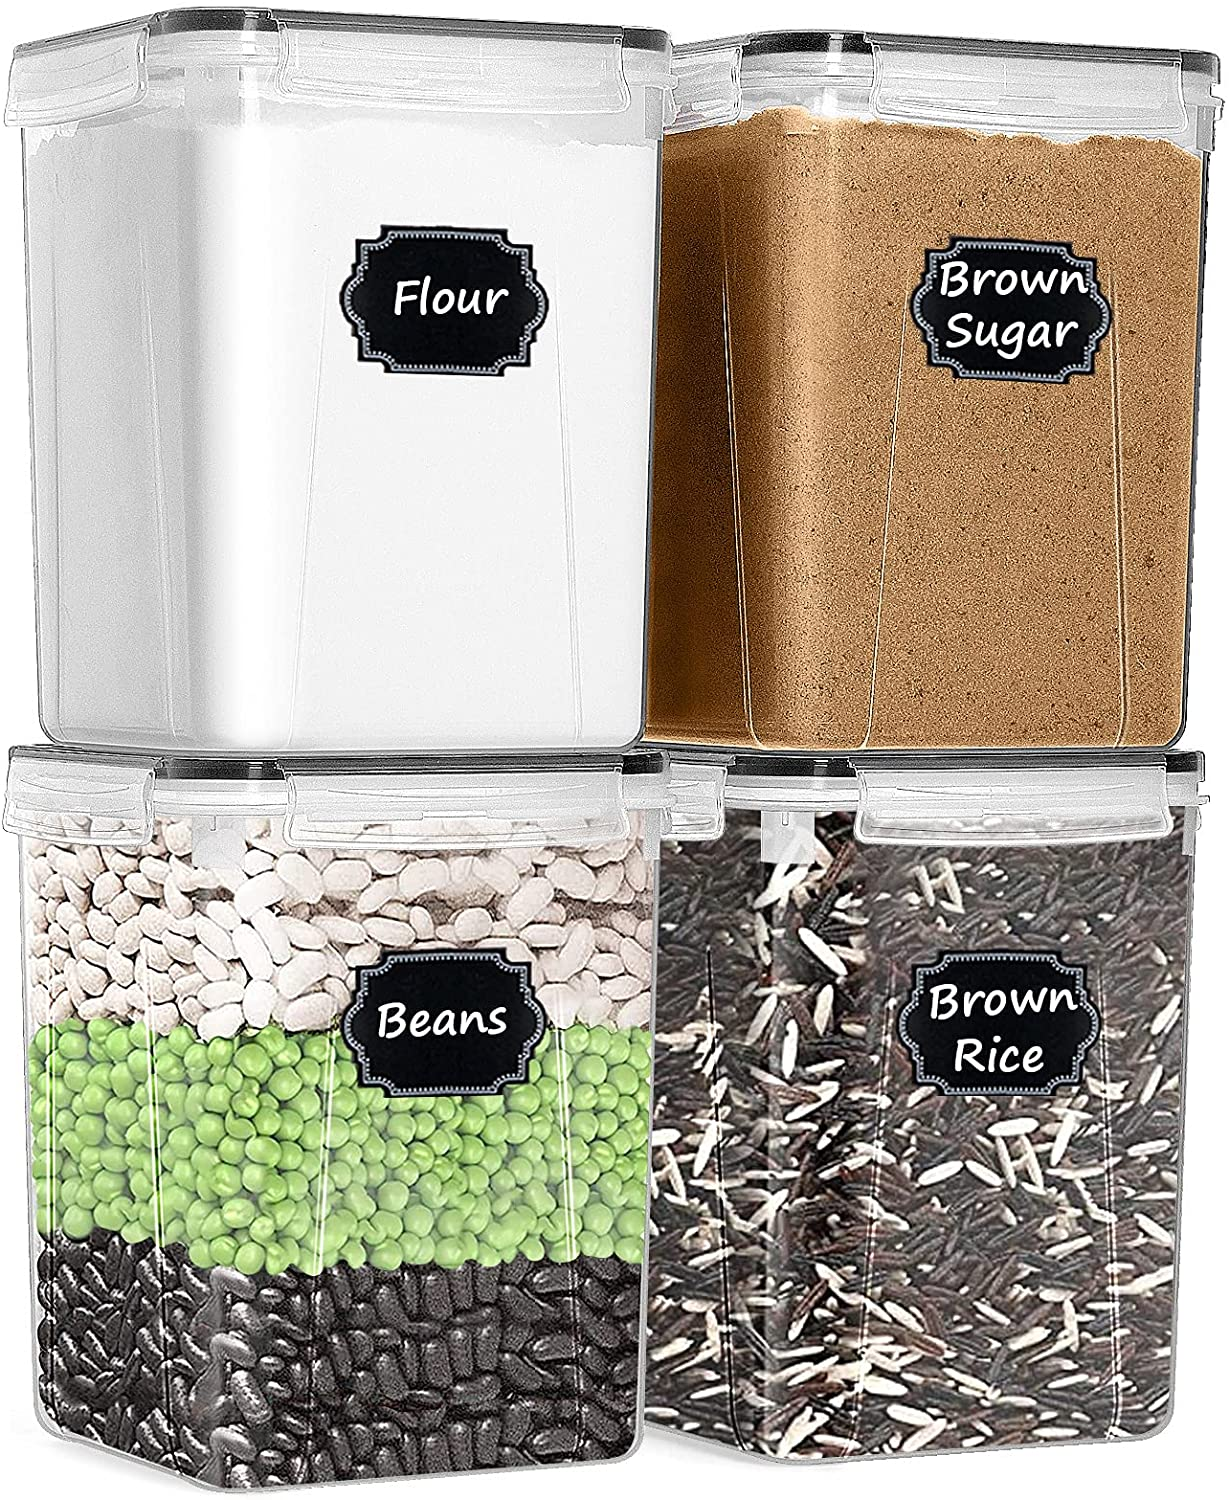 Large Food Storage Containers with Lids Airtight, Paincco BPA Free Plastic Canisters Set of 4 [5.2L /175oz] for Kitchen Pantry Organization, with 20 Labels & 1 Marker